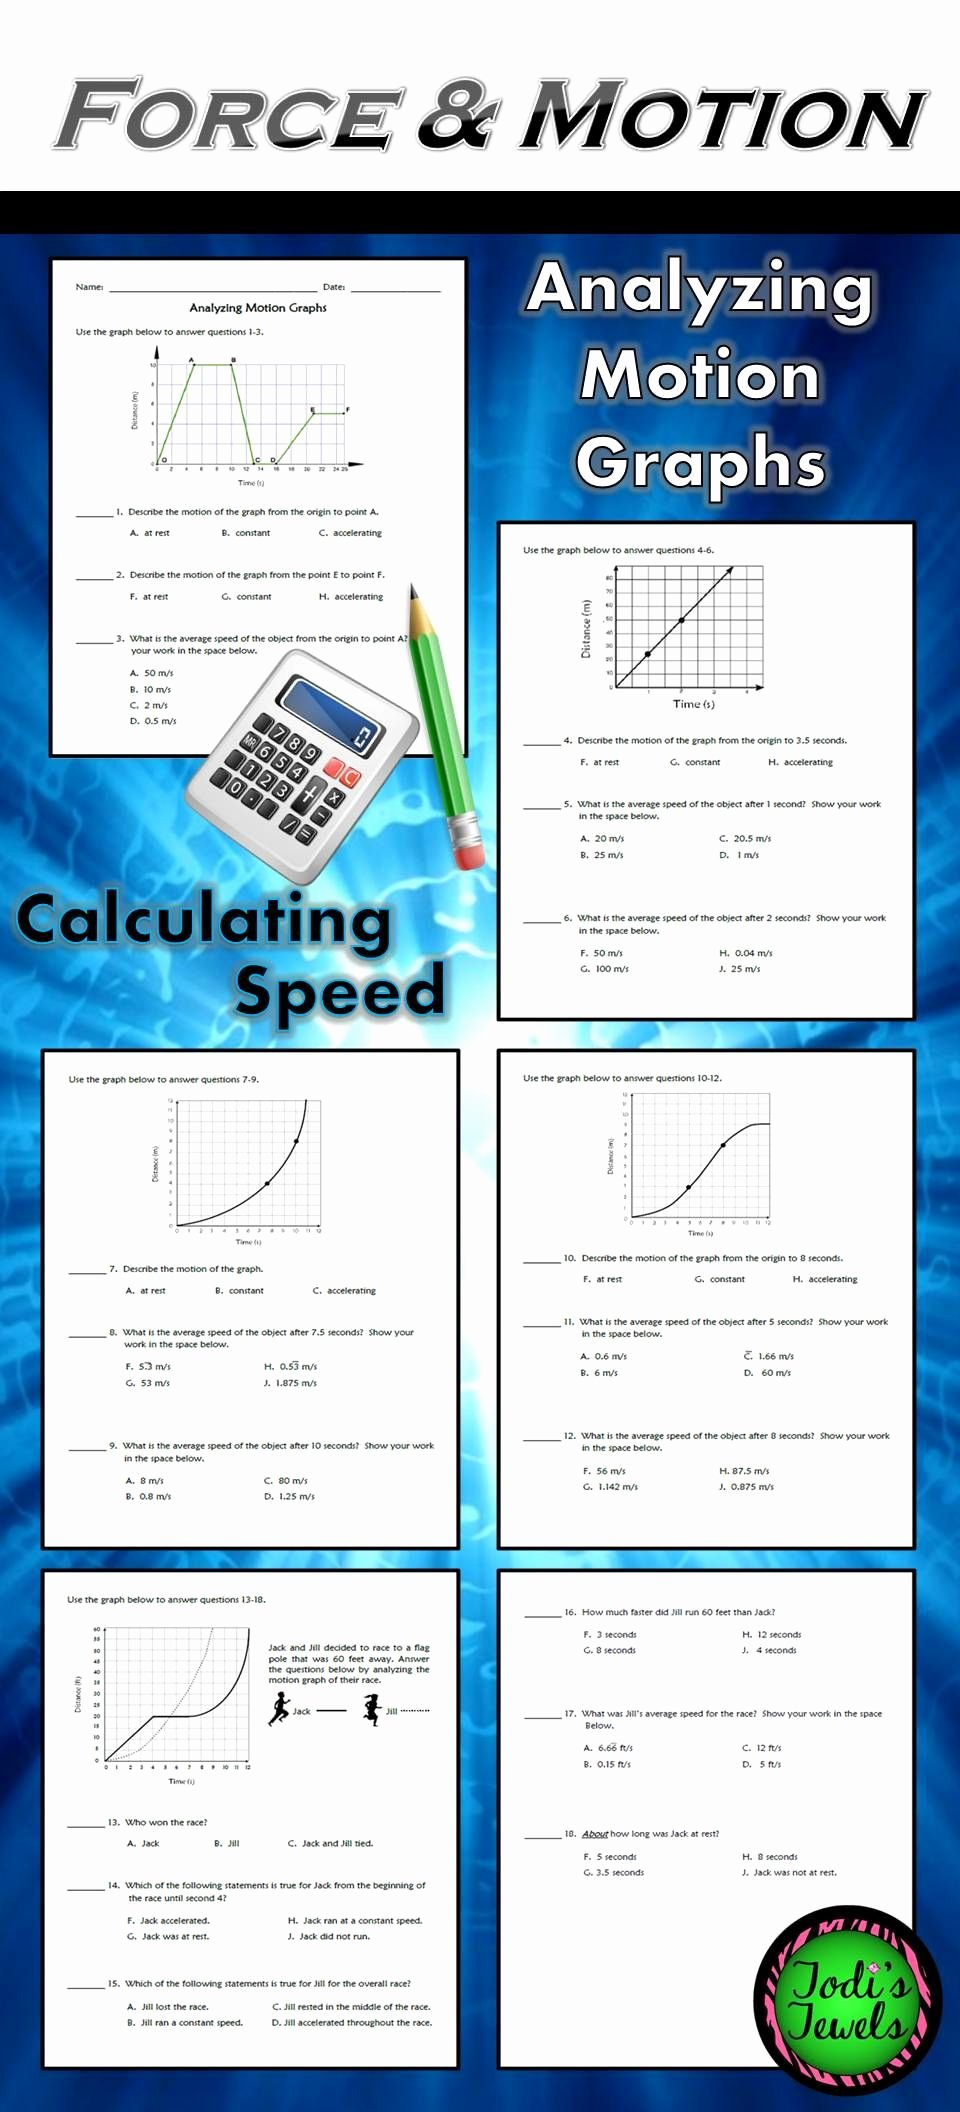 Motion Graph Analysis Worksheet Awesome Analyzing Motion Graphs & Calculating Speed Ws